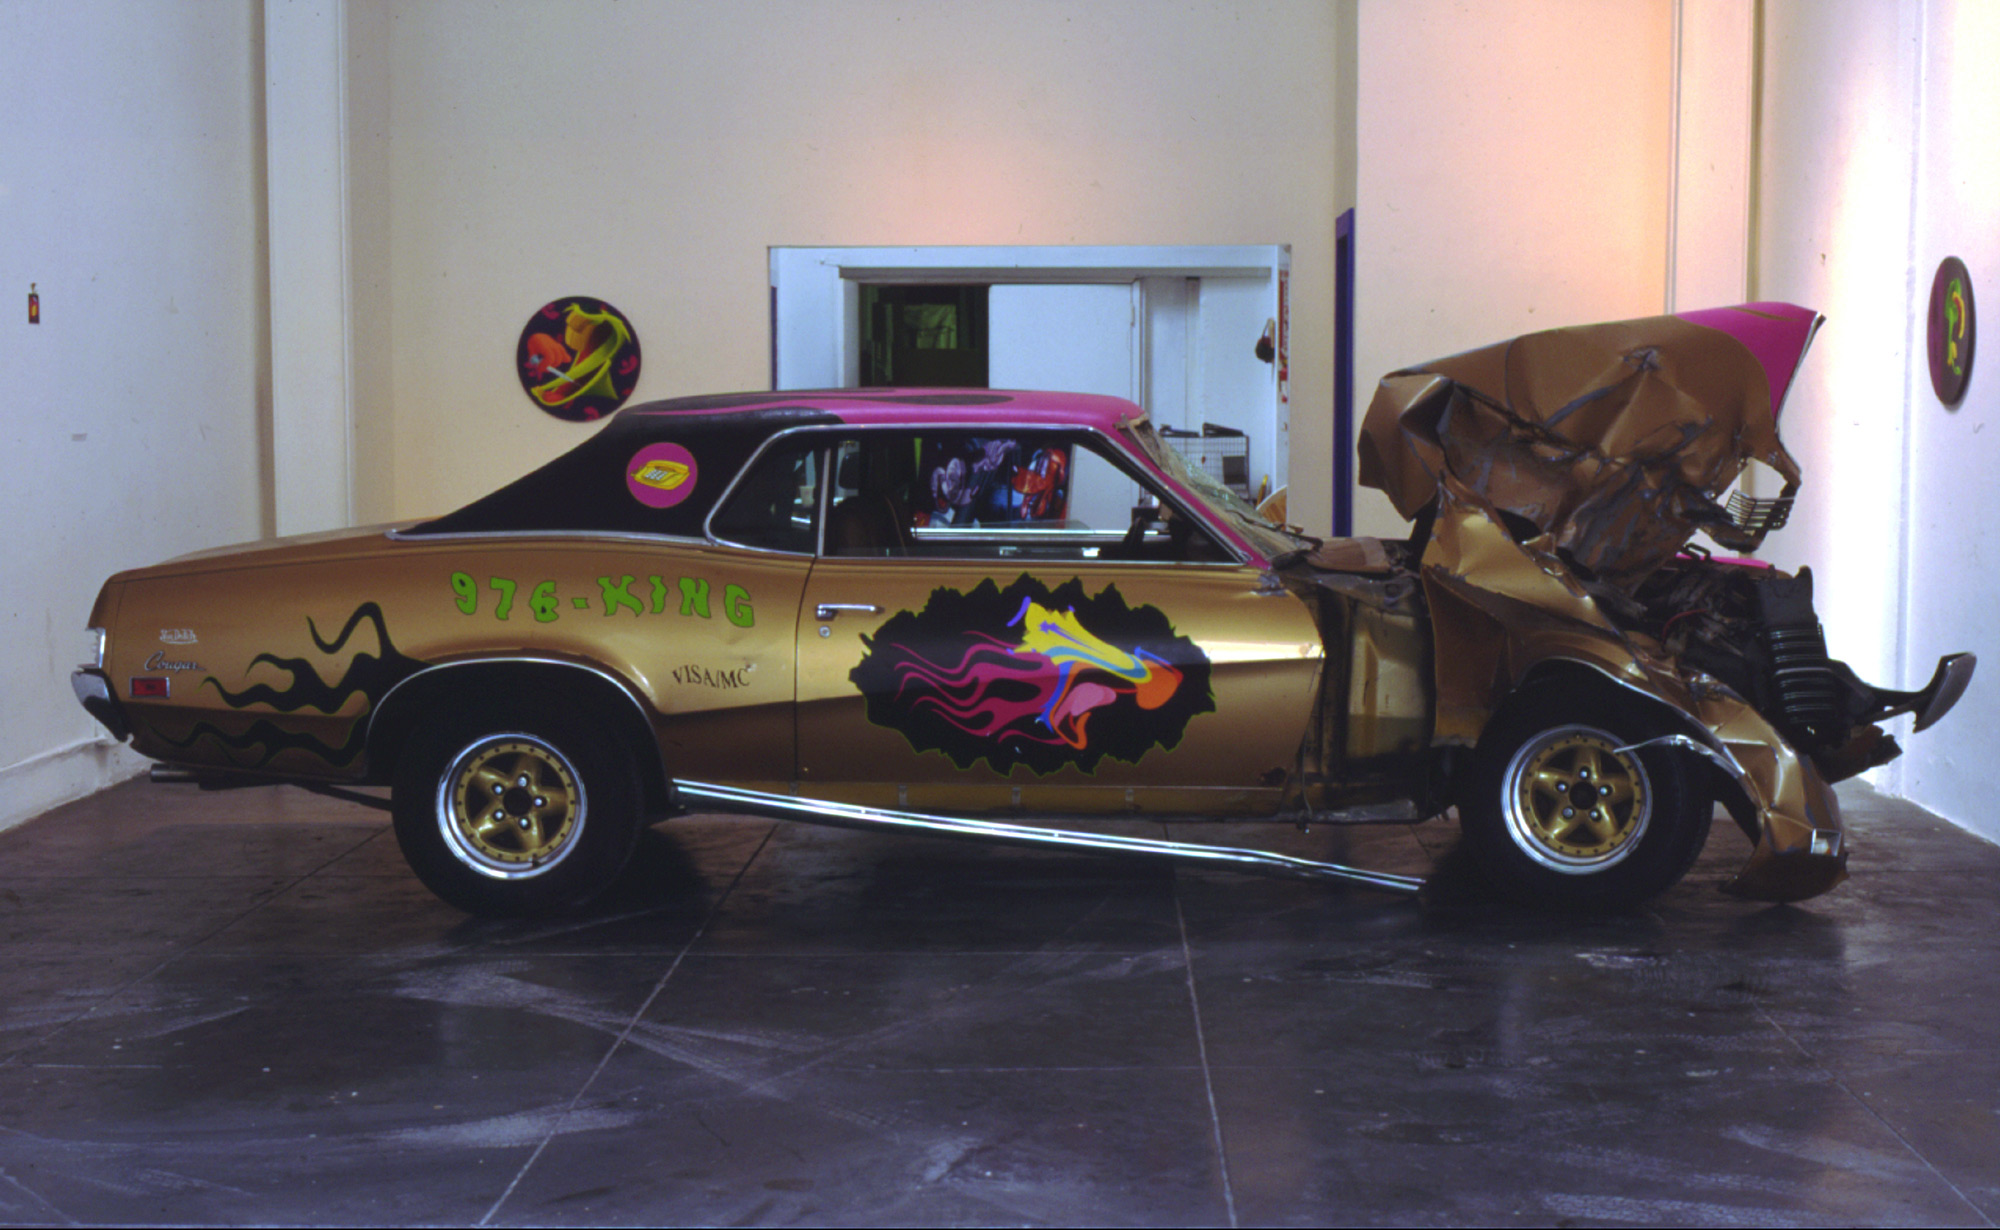 Carphone Sex: Installation, 1996